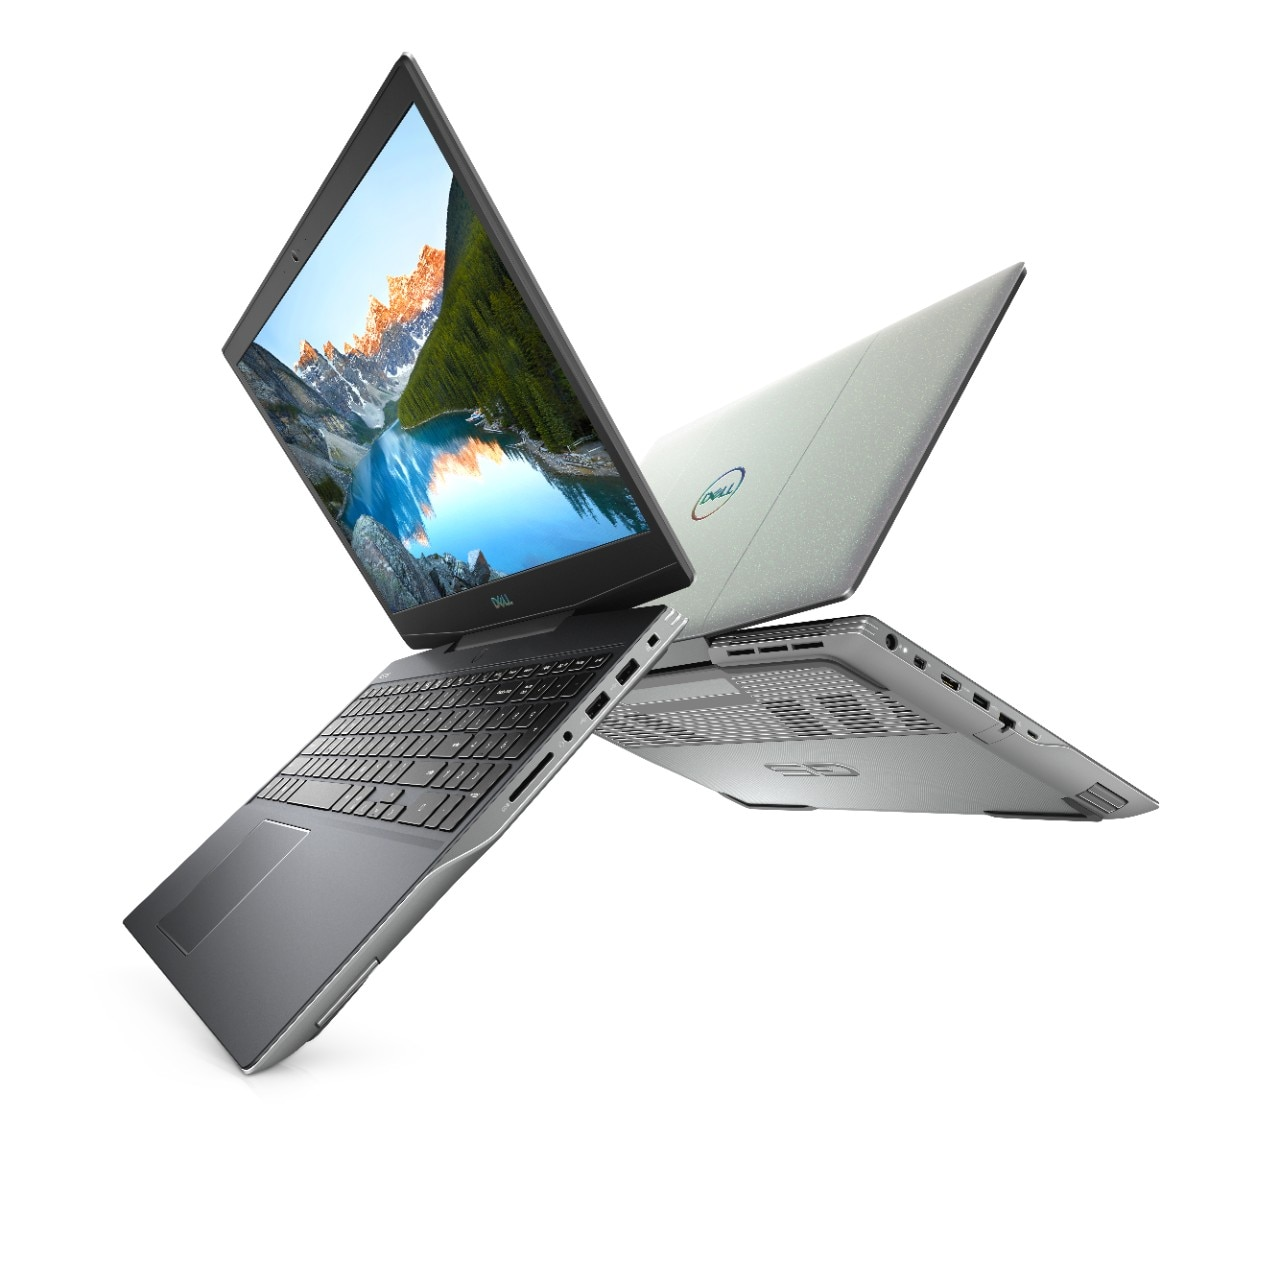 Dell G5 15 - 5505 Gaming Laptop